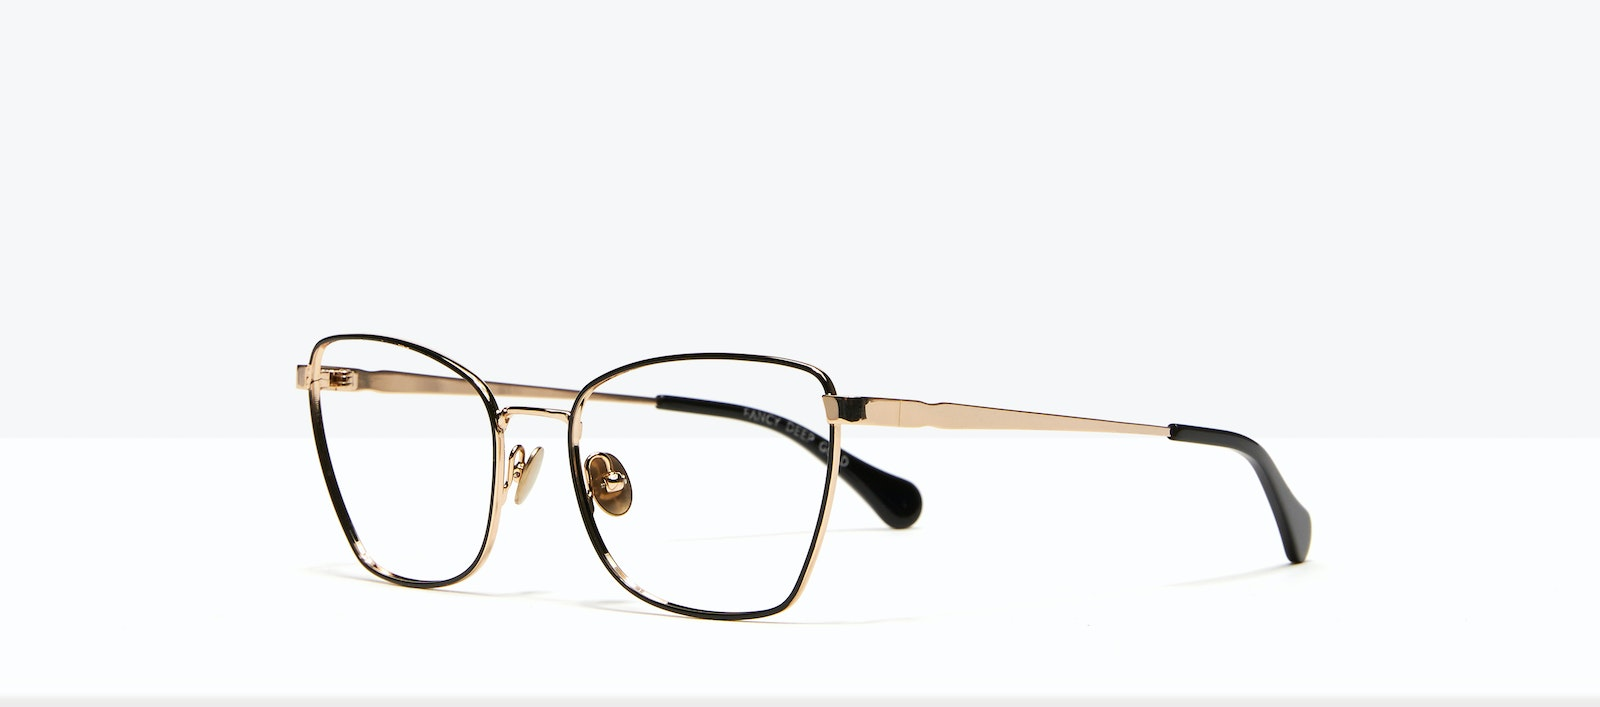 Affordable Fashion Glasses Cat Eye Eyeglasses Women Fancy Deep Gold Tilt